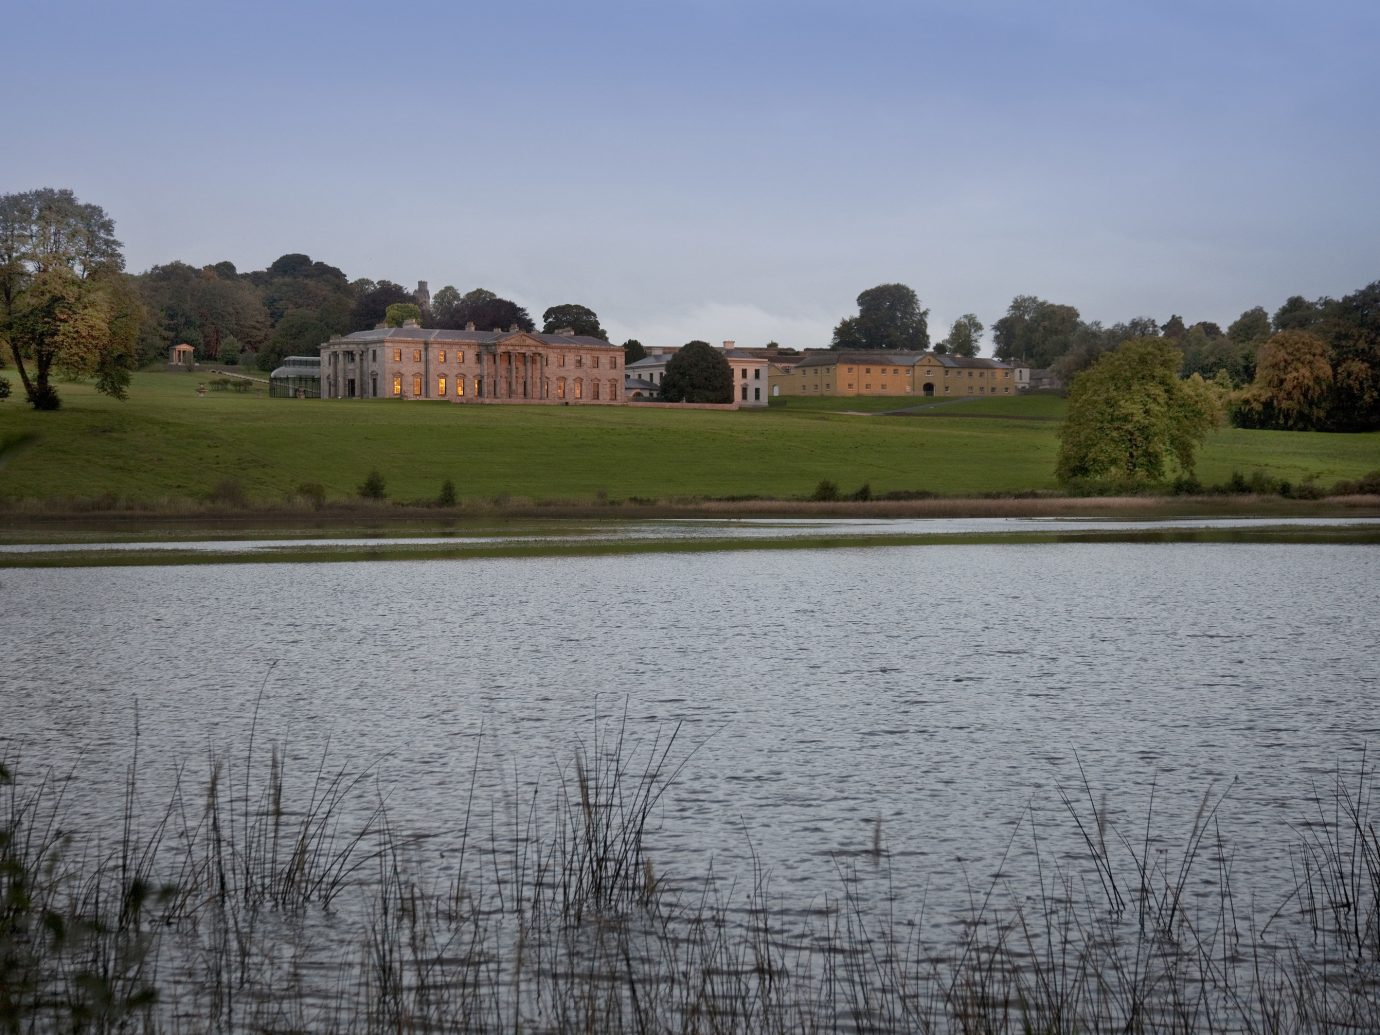 View of pond and buildings at Ballyfin in Ireland